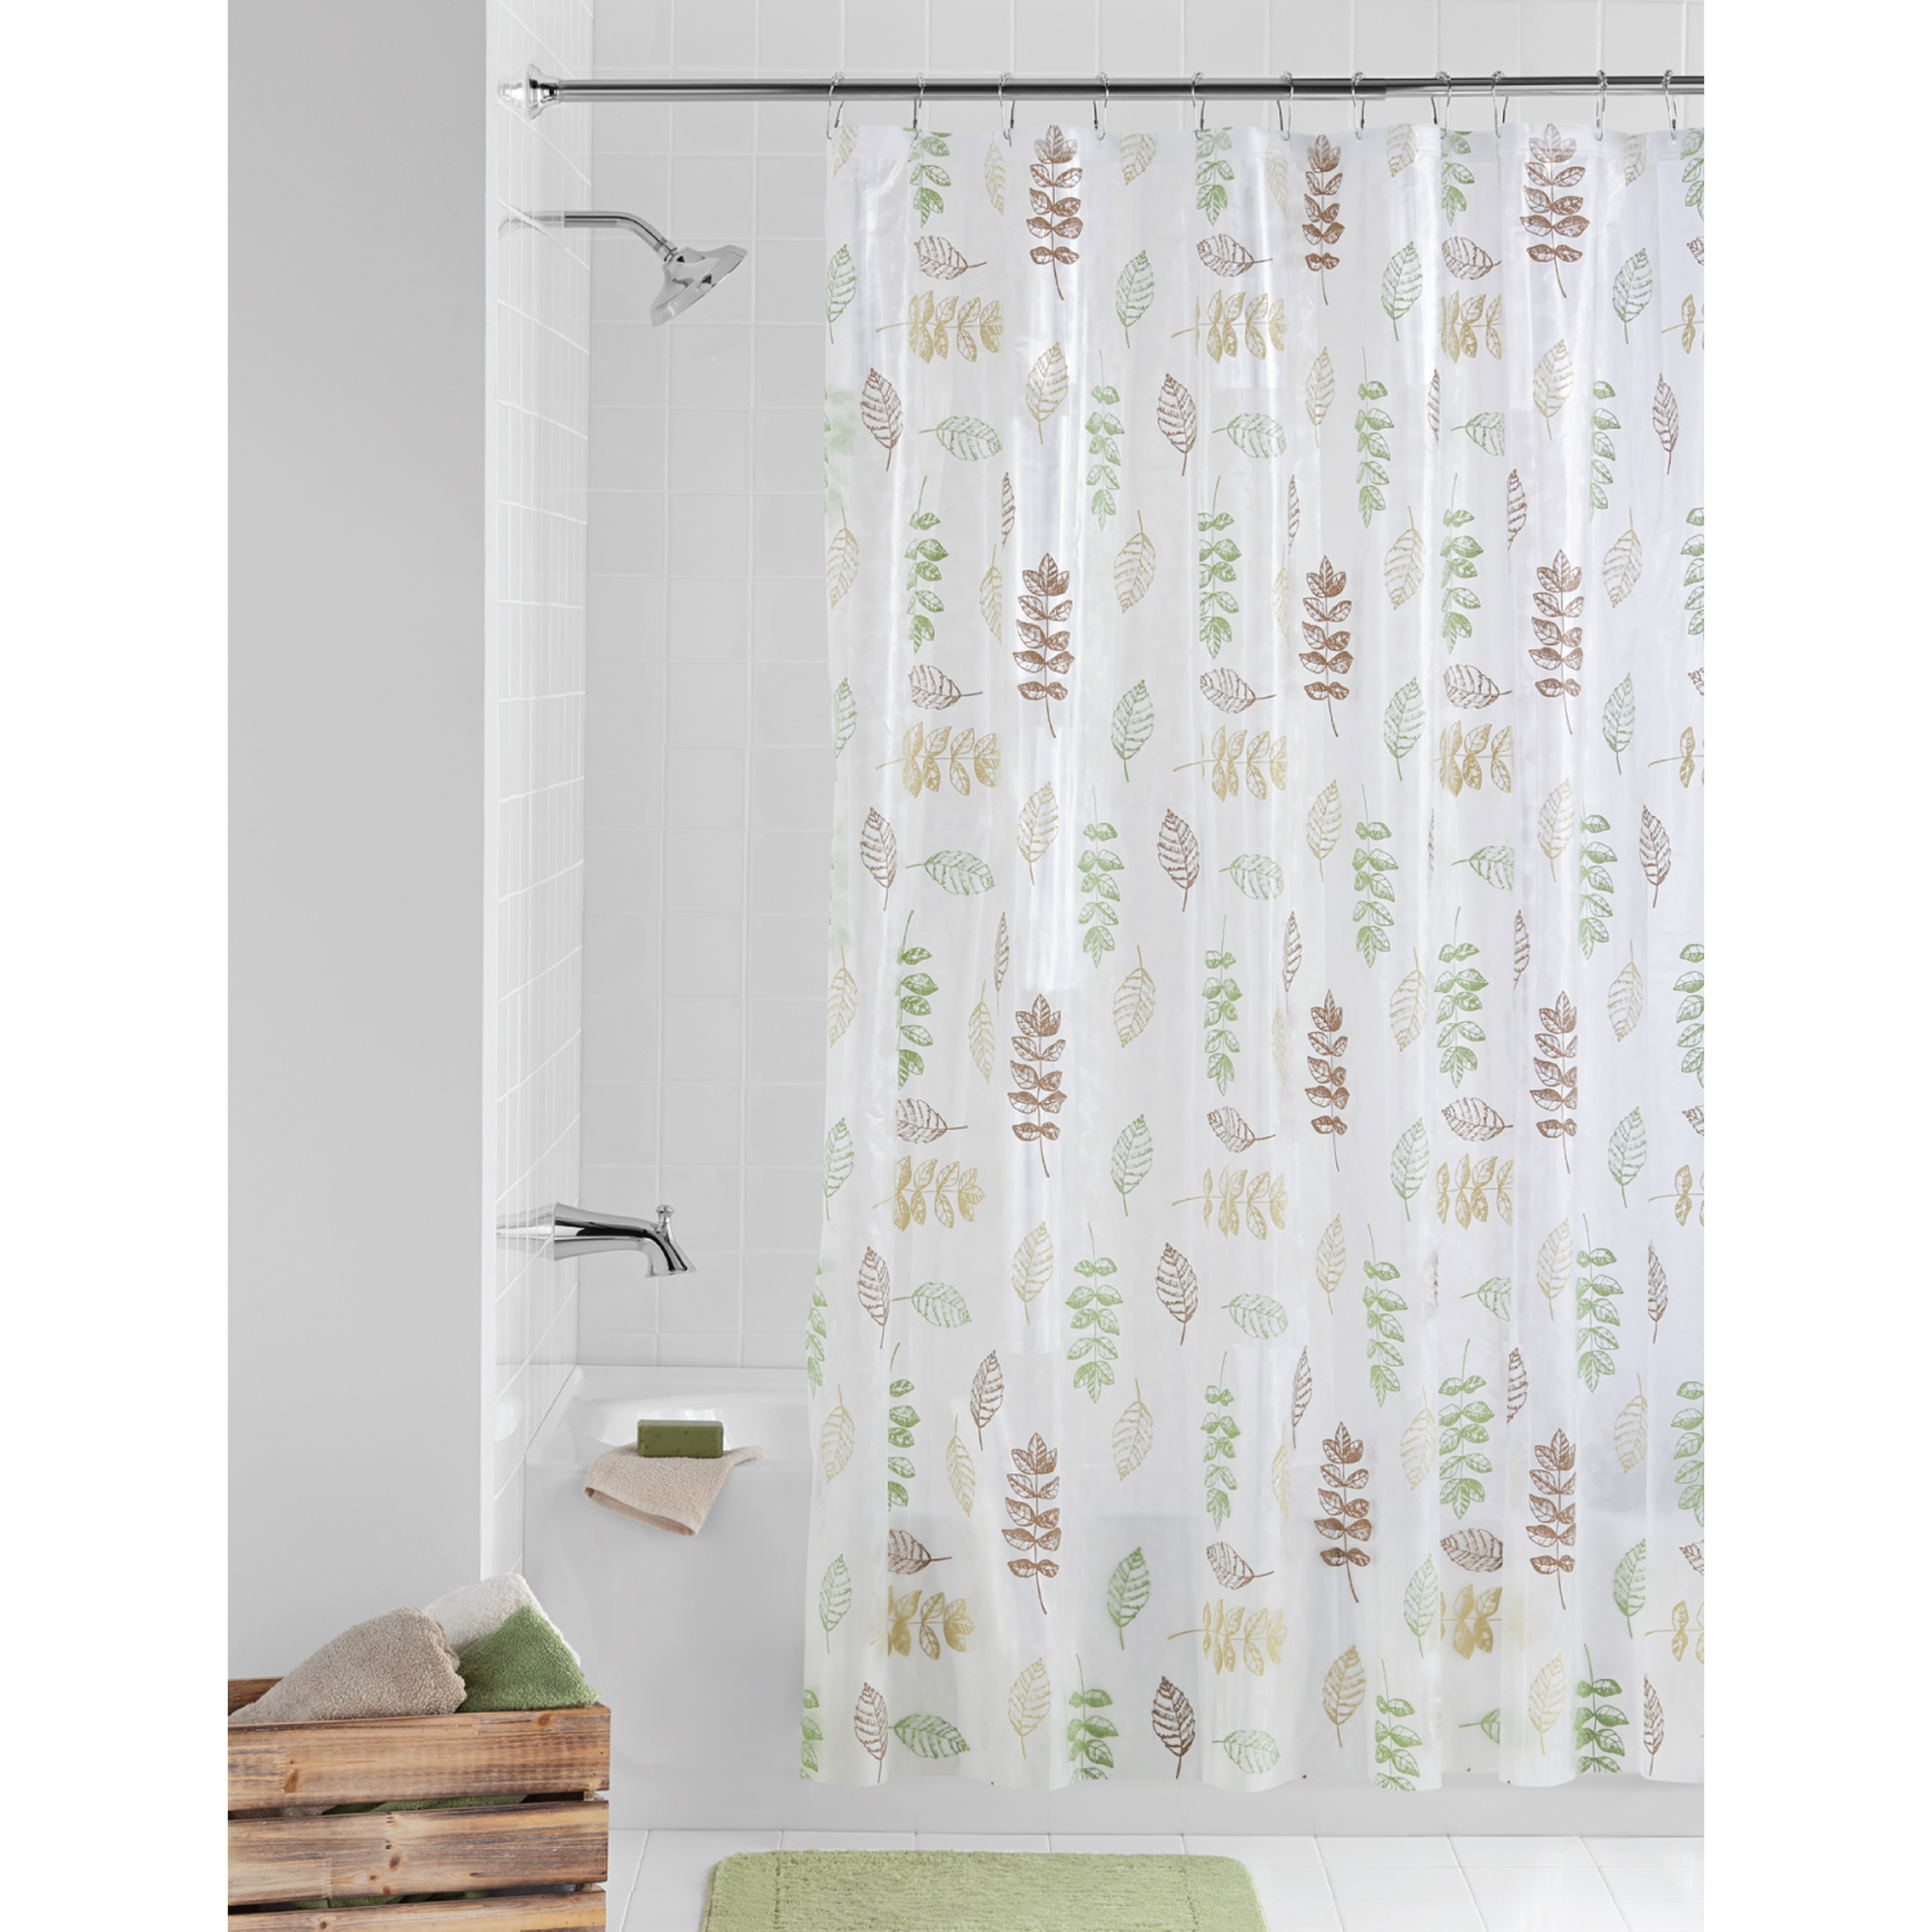 Bathroom Shower Curtain Mainstays Peva Shower Curtain Bathroom Set 13 Piece